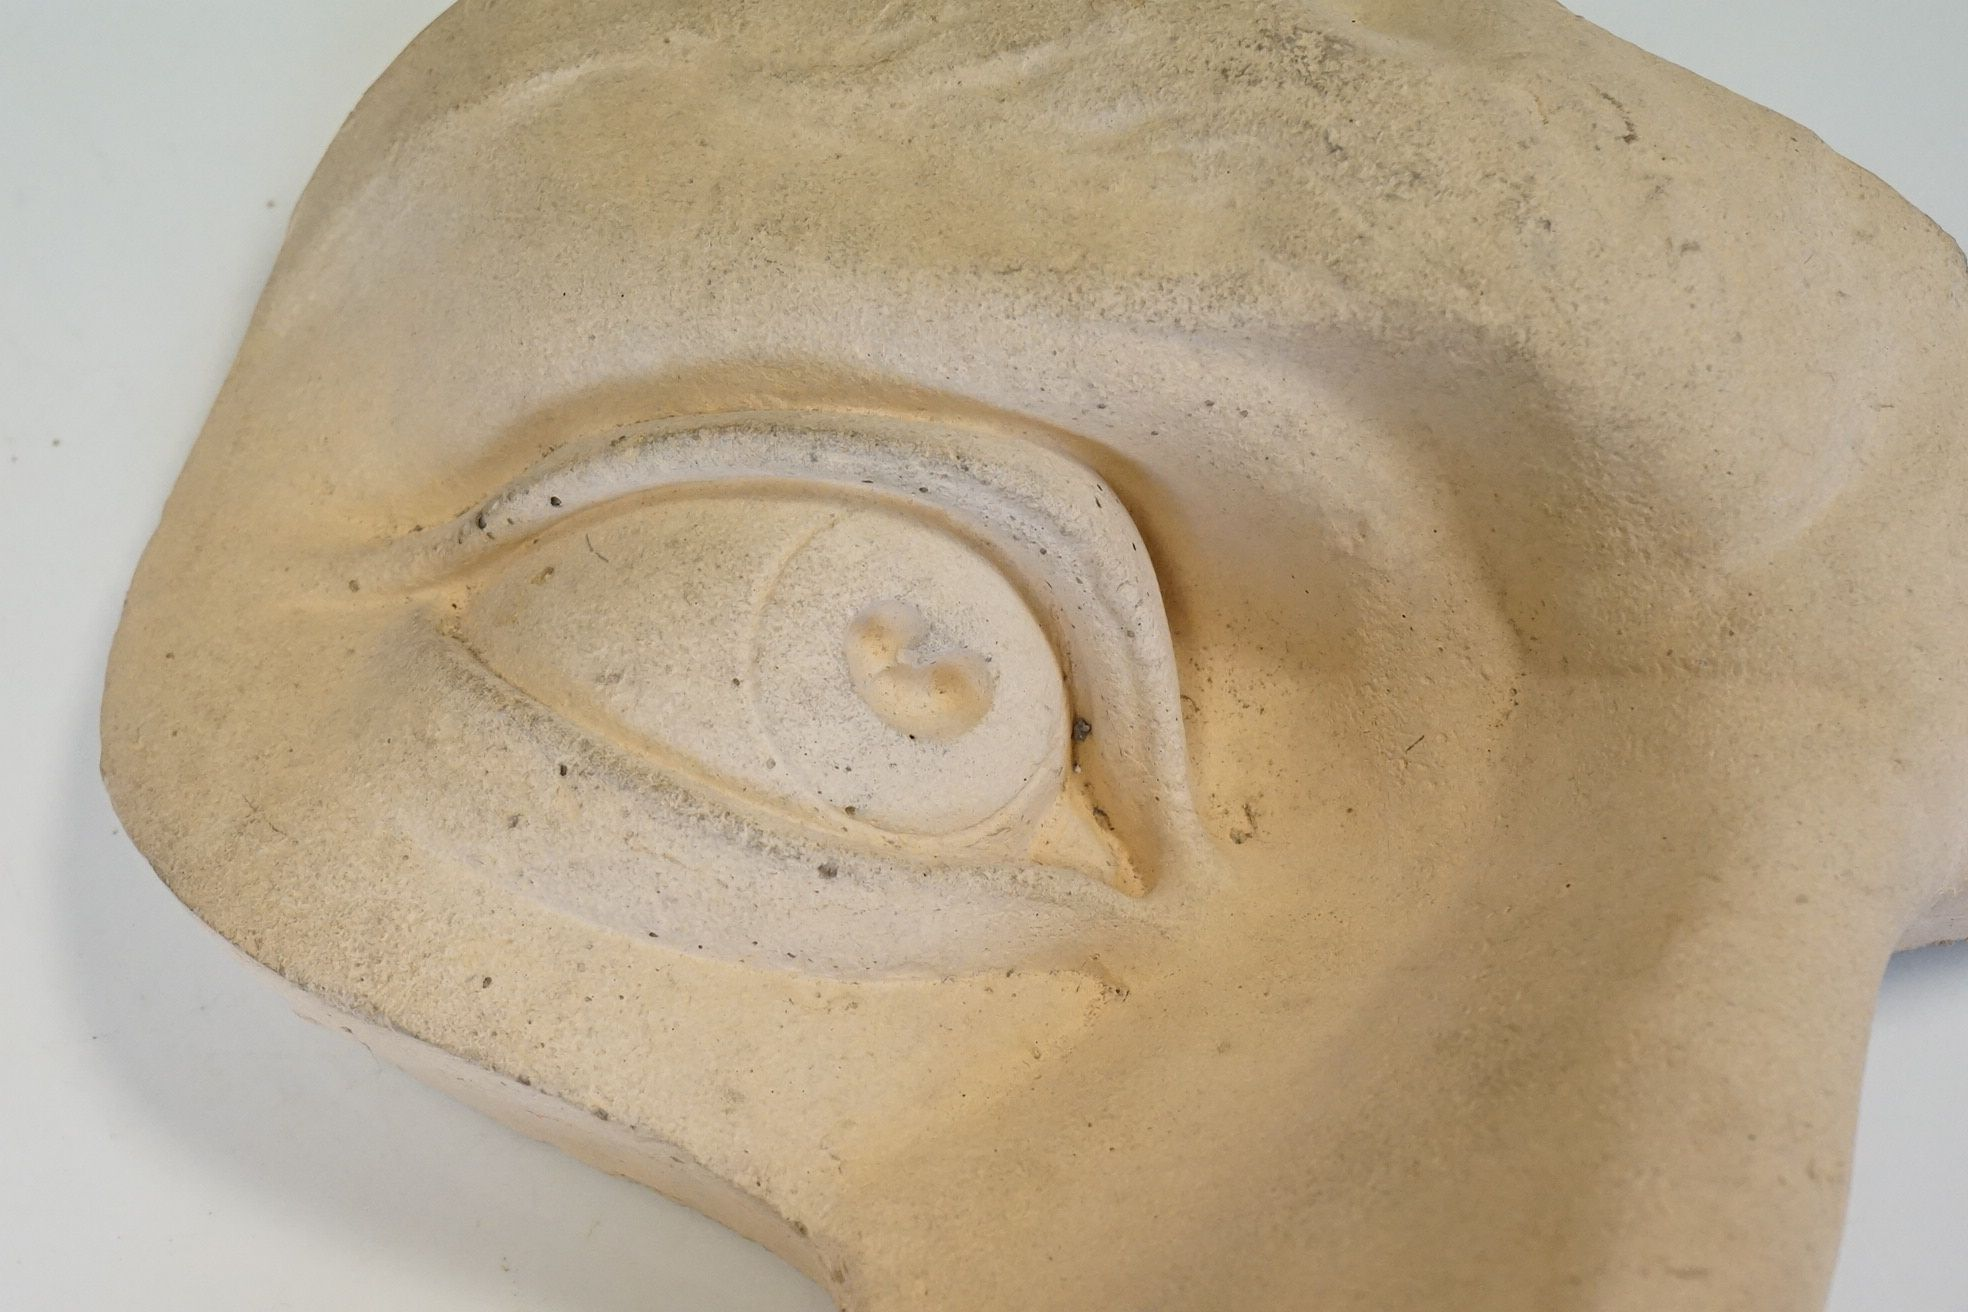 Contemporary stone sculpture of an opera mask / facial figure - Image 3 of 4